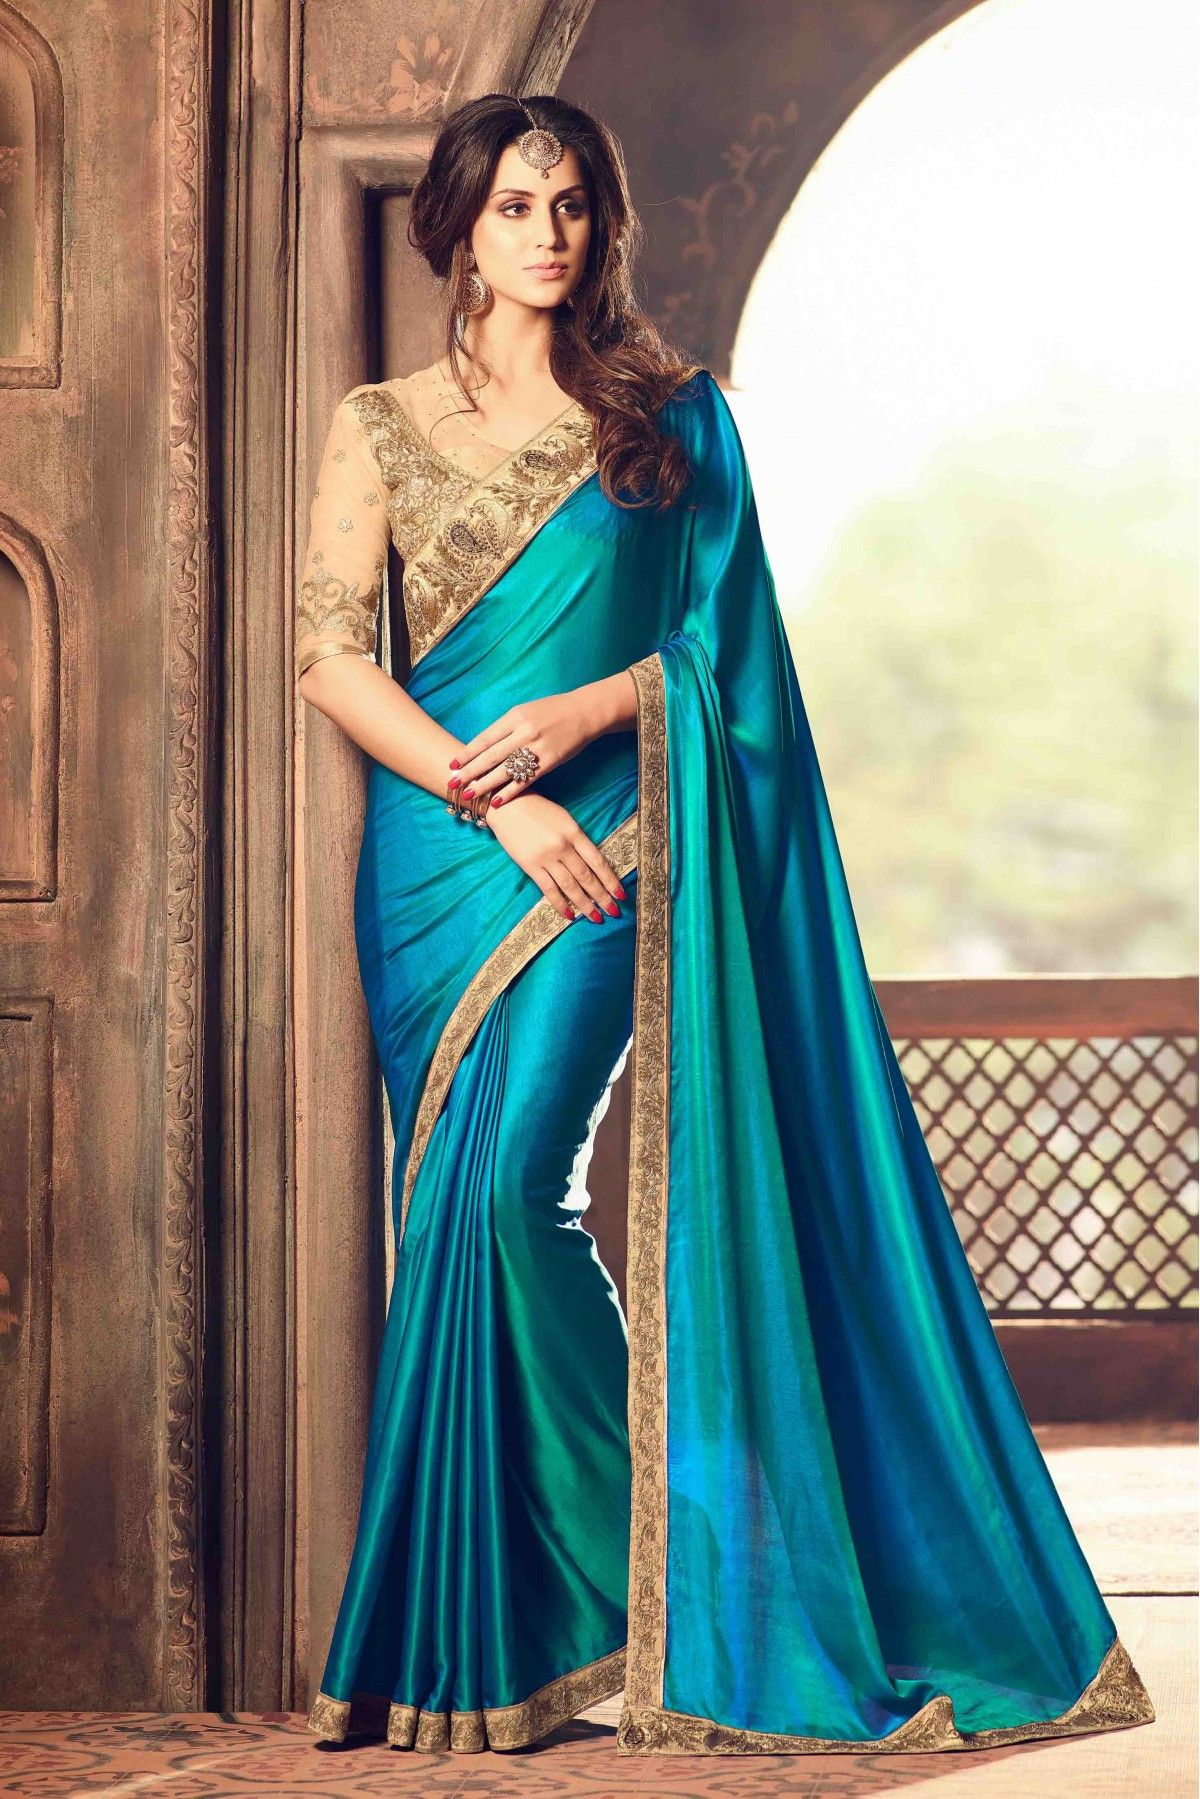 5455be299a Buy Silk Designer Saree In Teal Blue Colour for women @ ninecolours.com.  Worldwide Free Shipping Available!